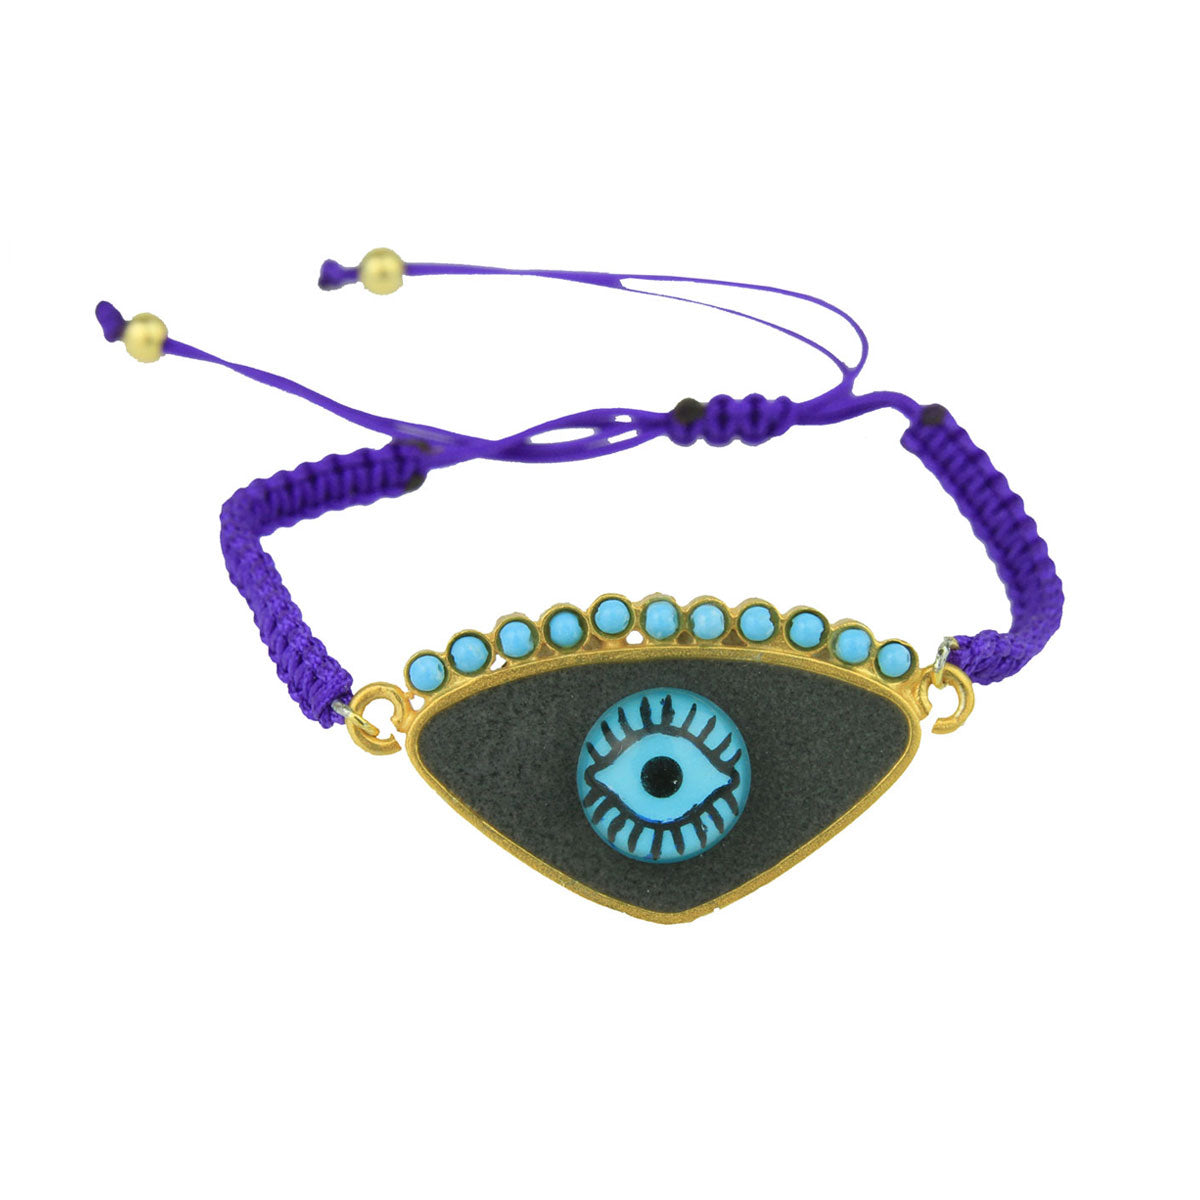 Gold Plated 925 Silver and Grey Enamel Evil Eye Cord Charm Bracelet